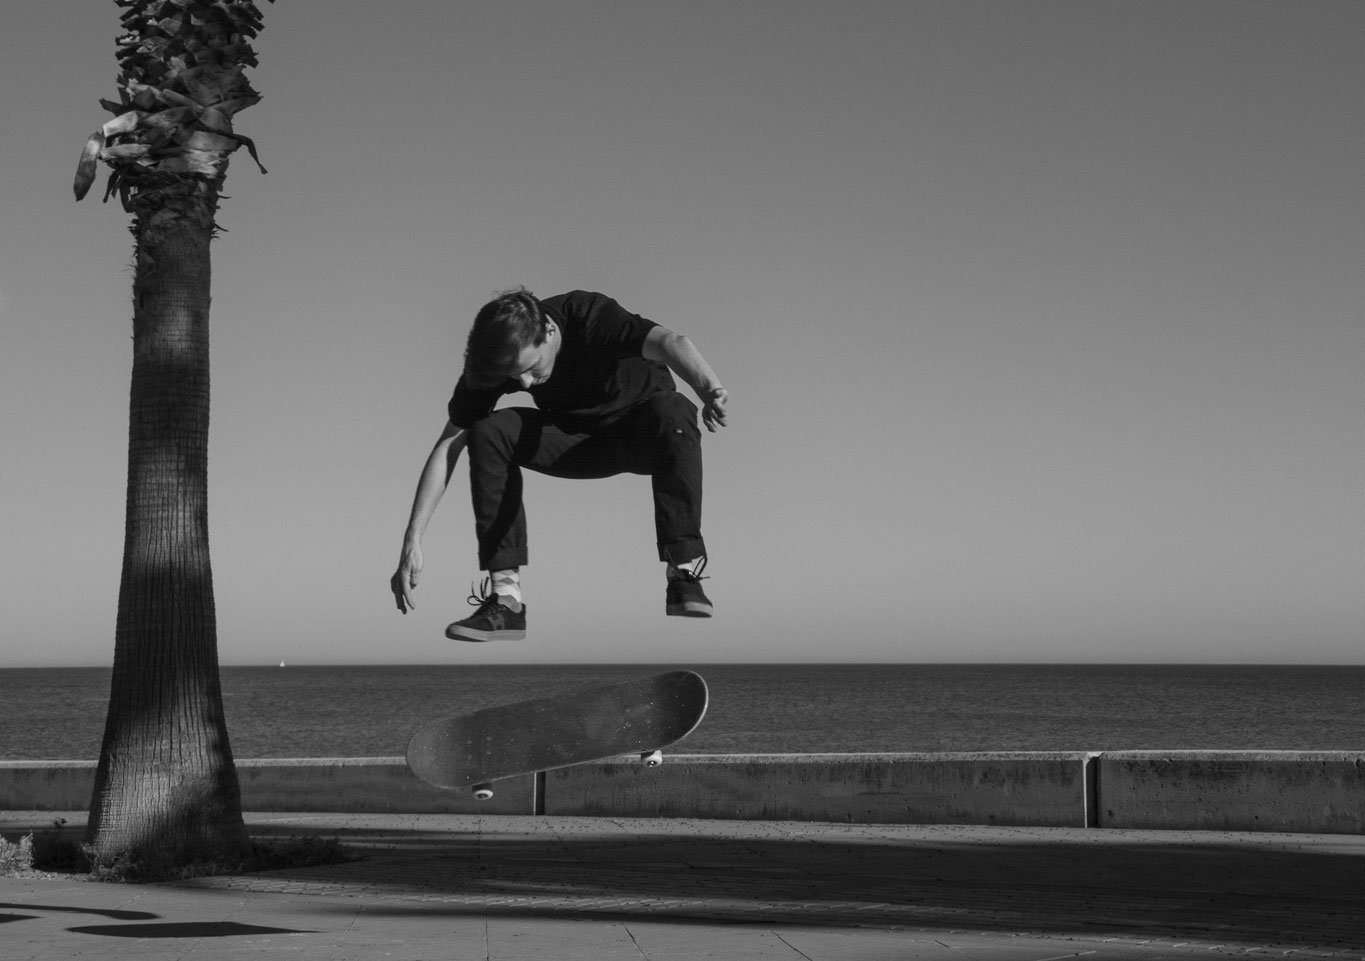 As skateboarding lands in the Olympics, Poland's young hopefuls are put to the test